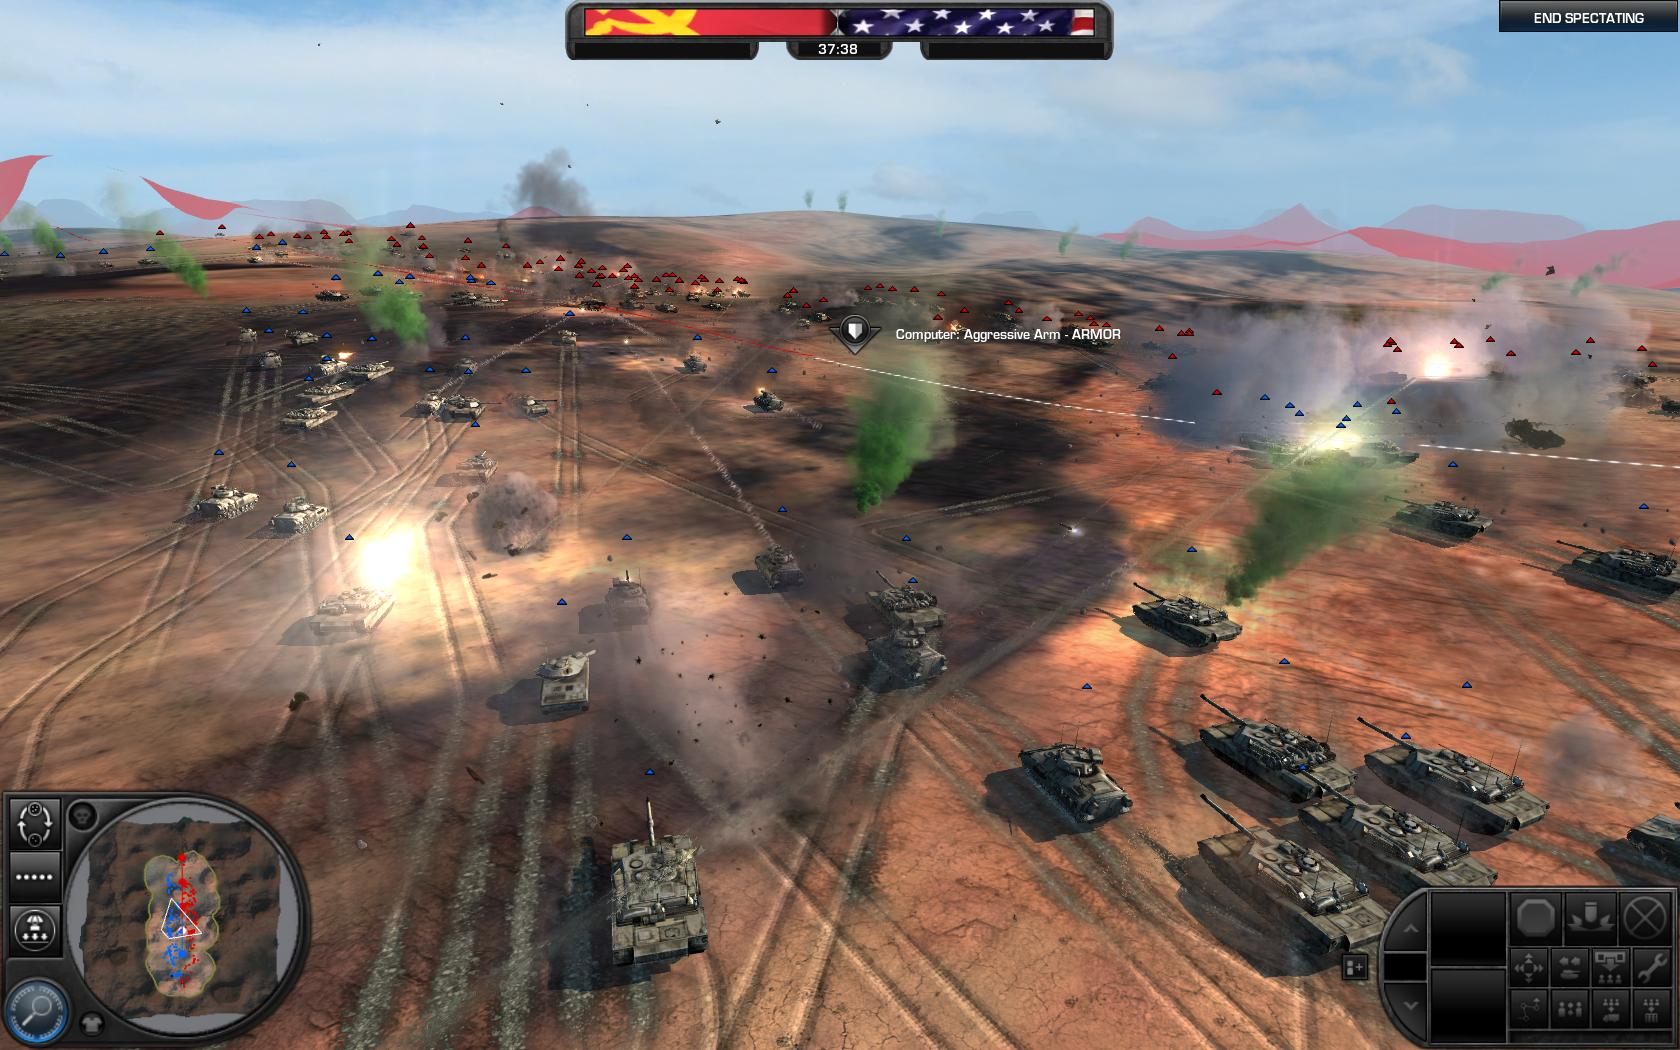 World in conflict map editor fileplanet world in conflict map editor download fileplanet gumiabroncs Gallery